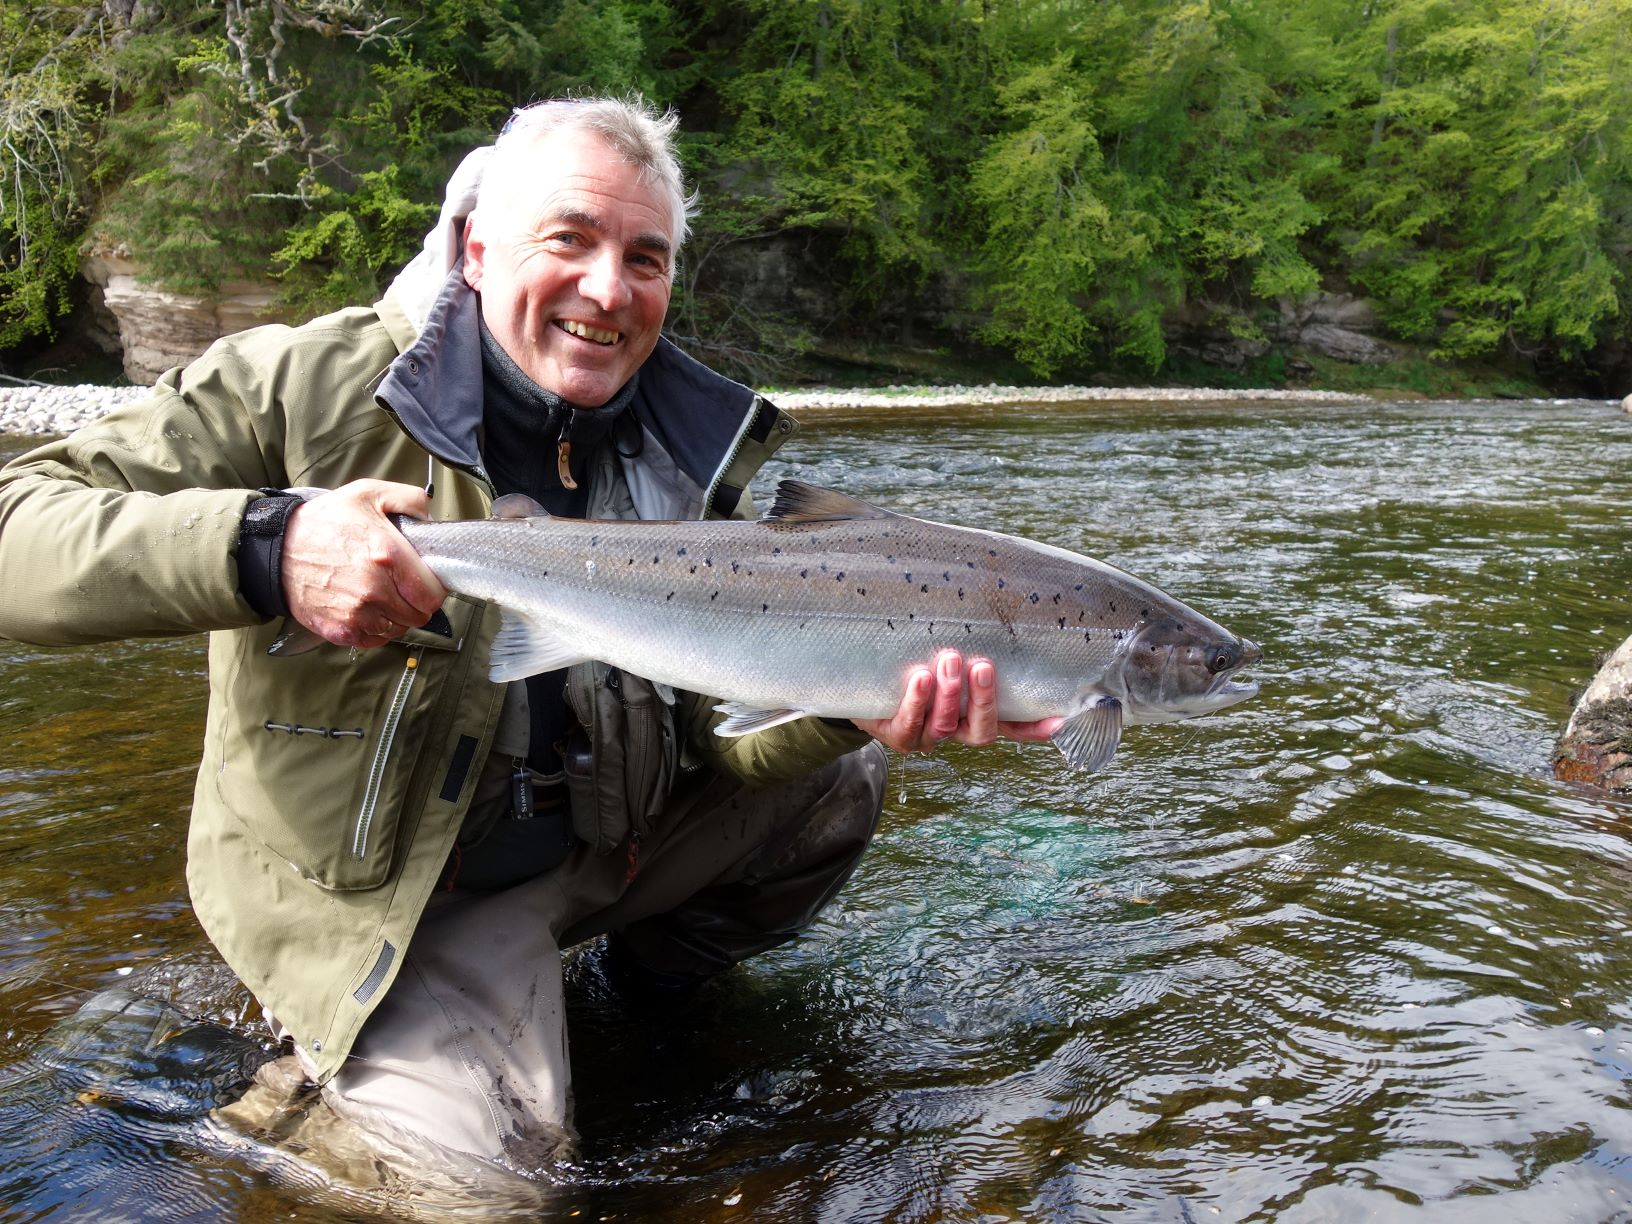 Torben Fyhring, 10 lbs., William's Run, Altyre Estate, River Findhorn